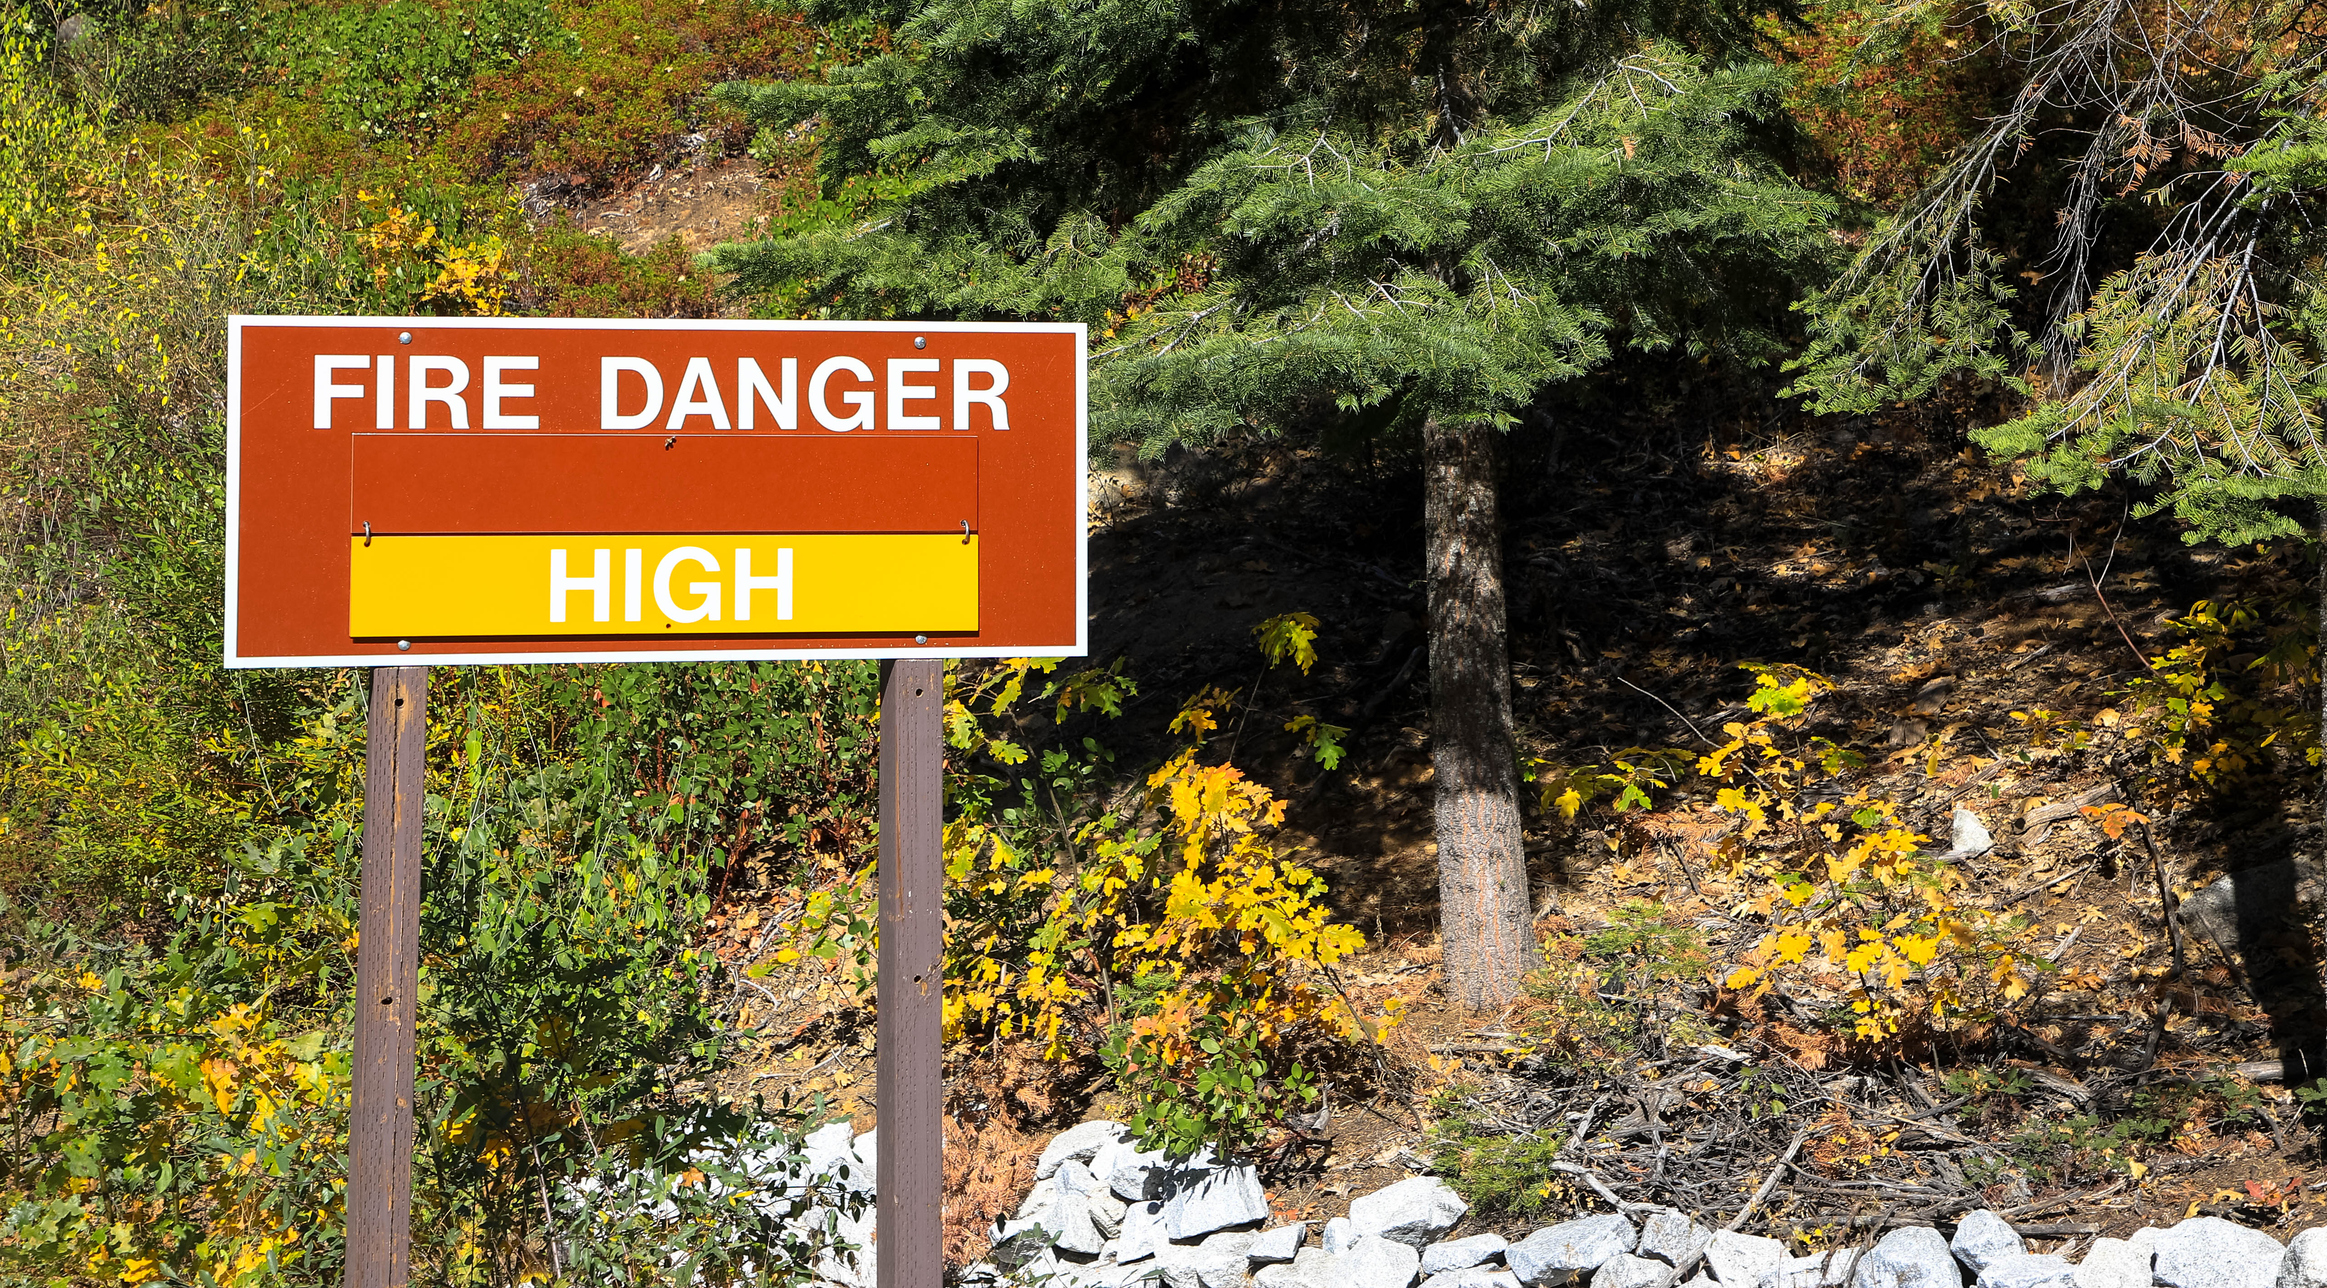 A sign in the Yosemite national park warns residents of the high wildfire danger in summer